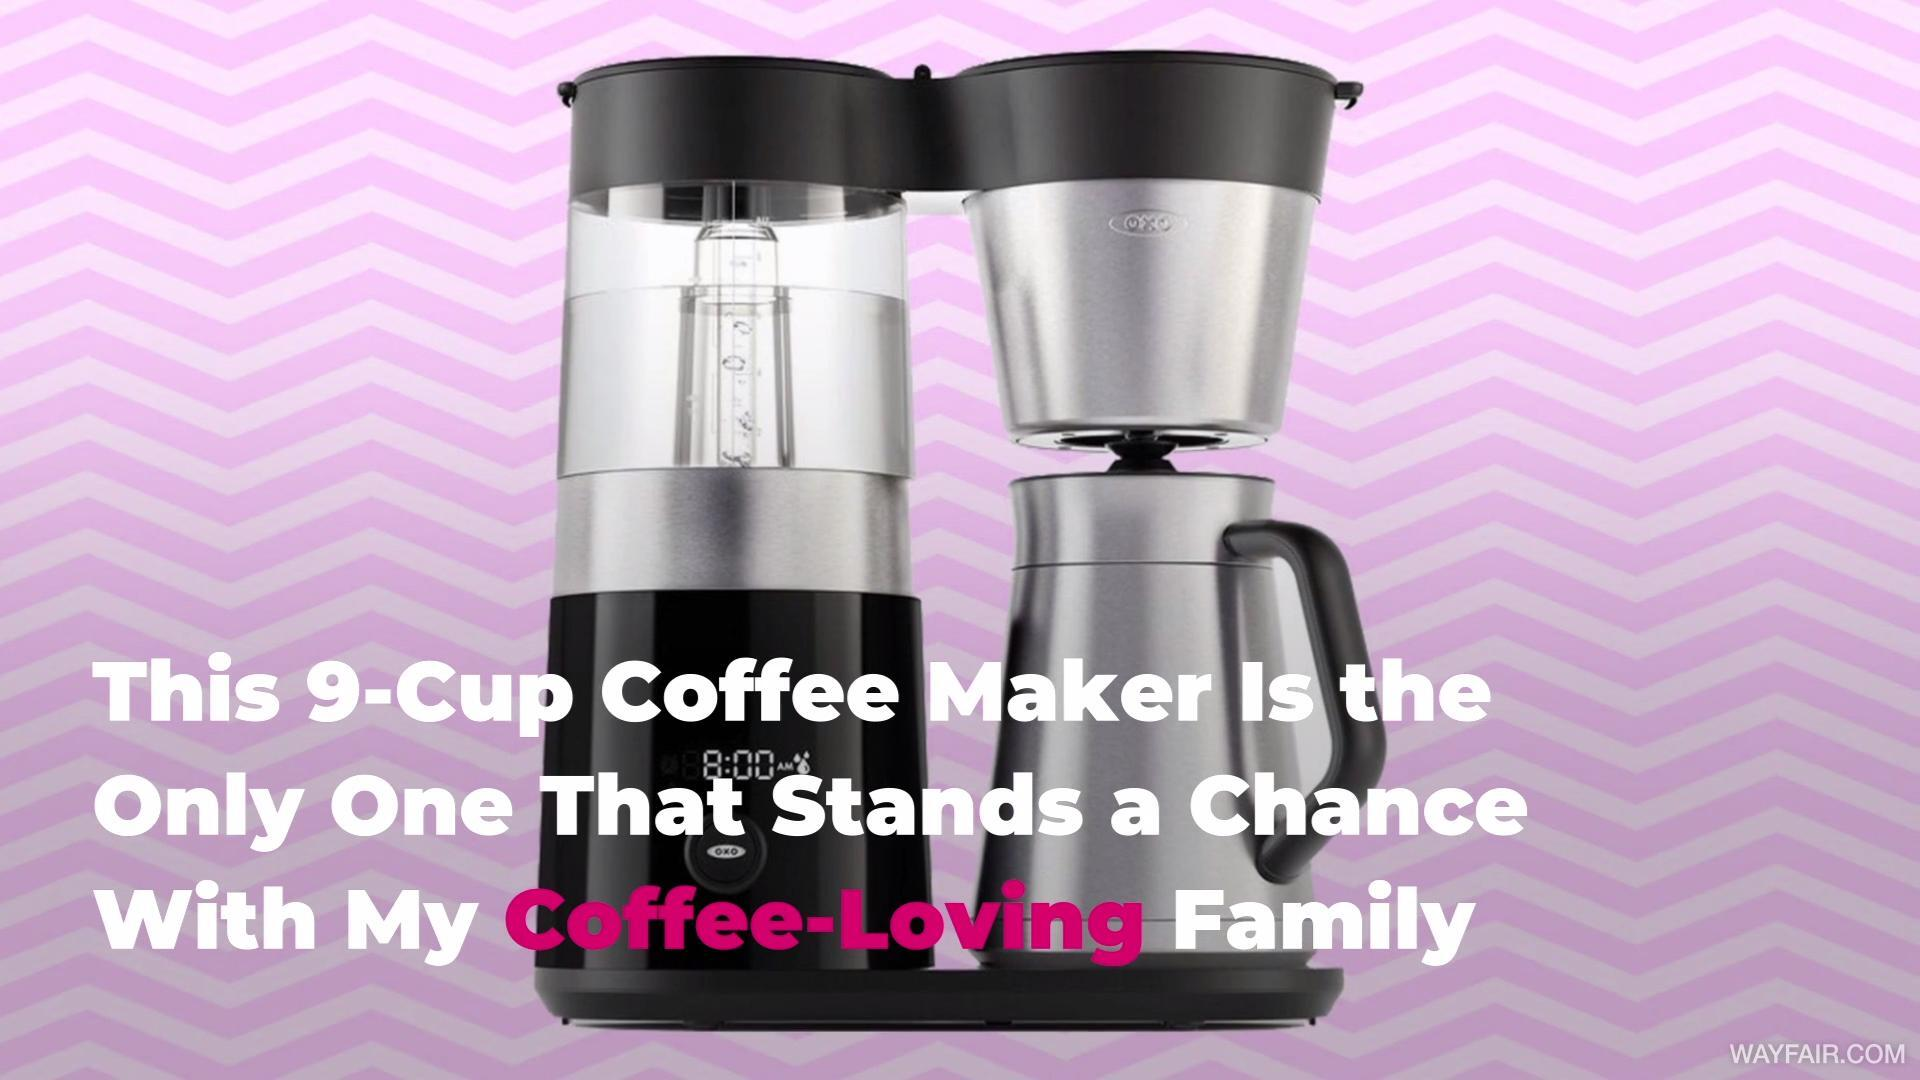 This 9-Cup Coffee Maker Is the Only One That Stands a Chance With My Coffee-Loving Family